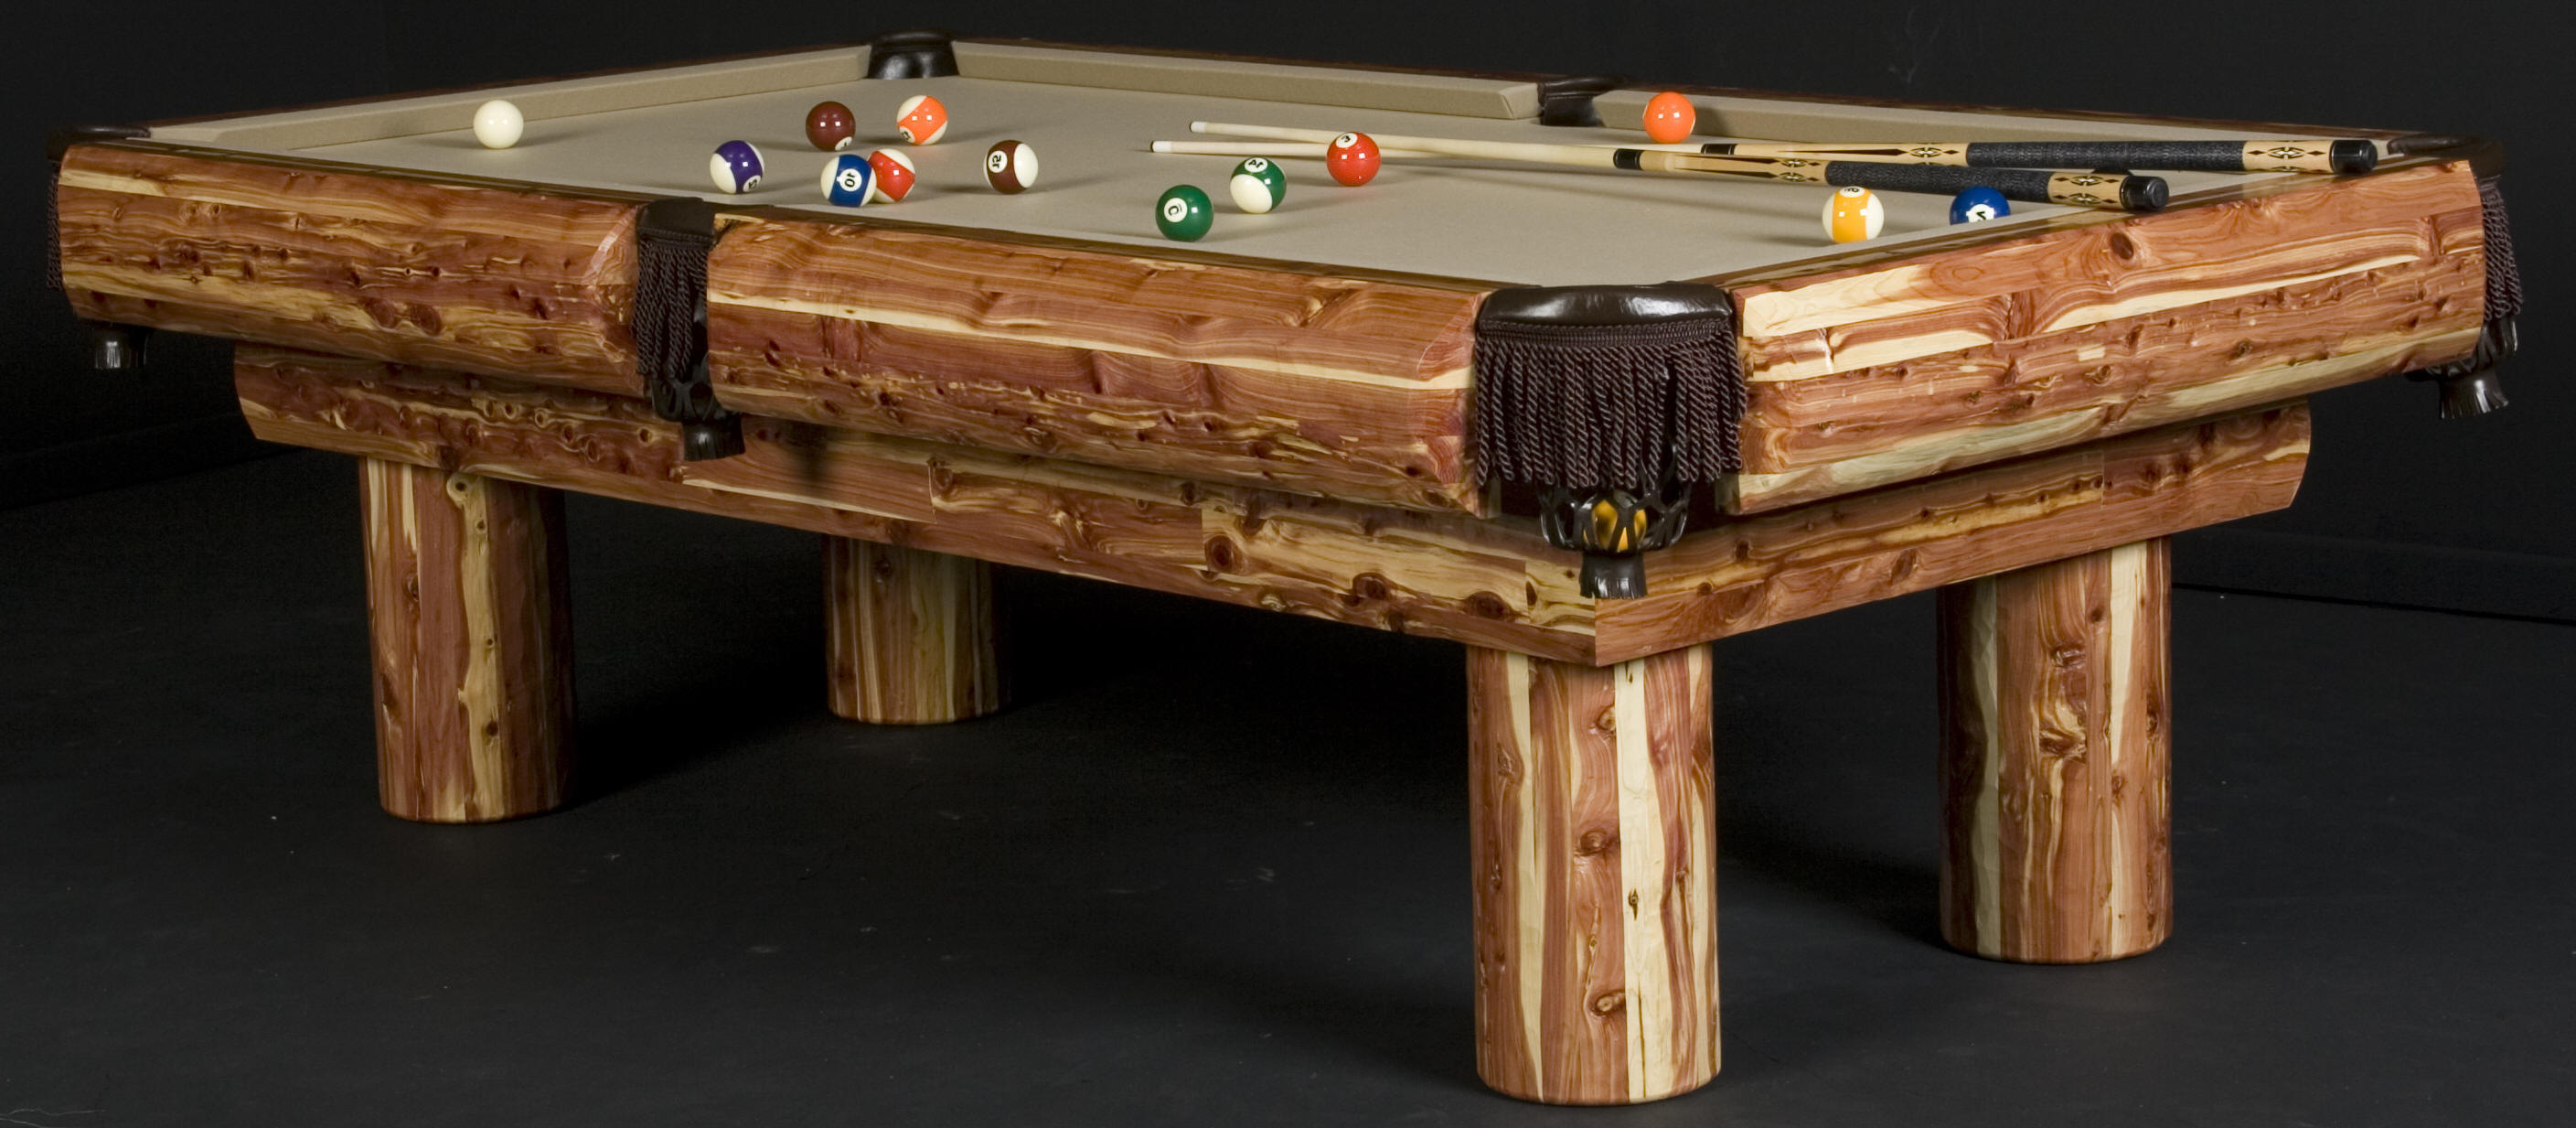 Wonderful unique pool table design homesfeed for Awesome dining table designs